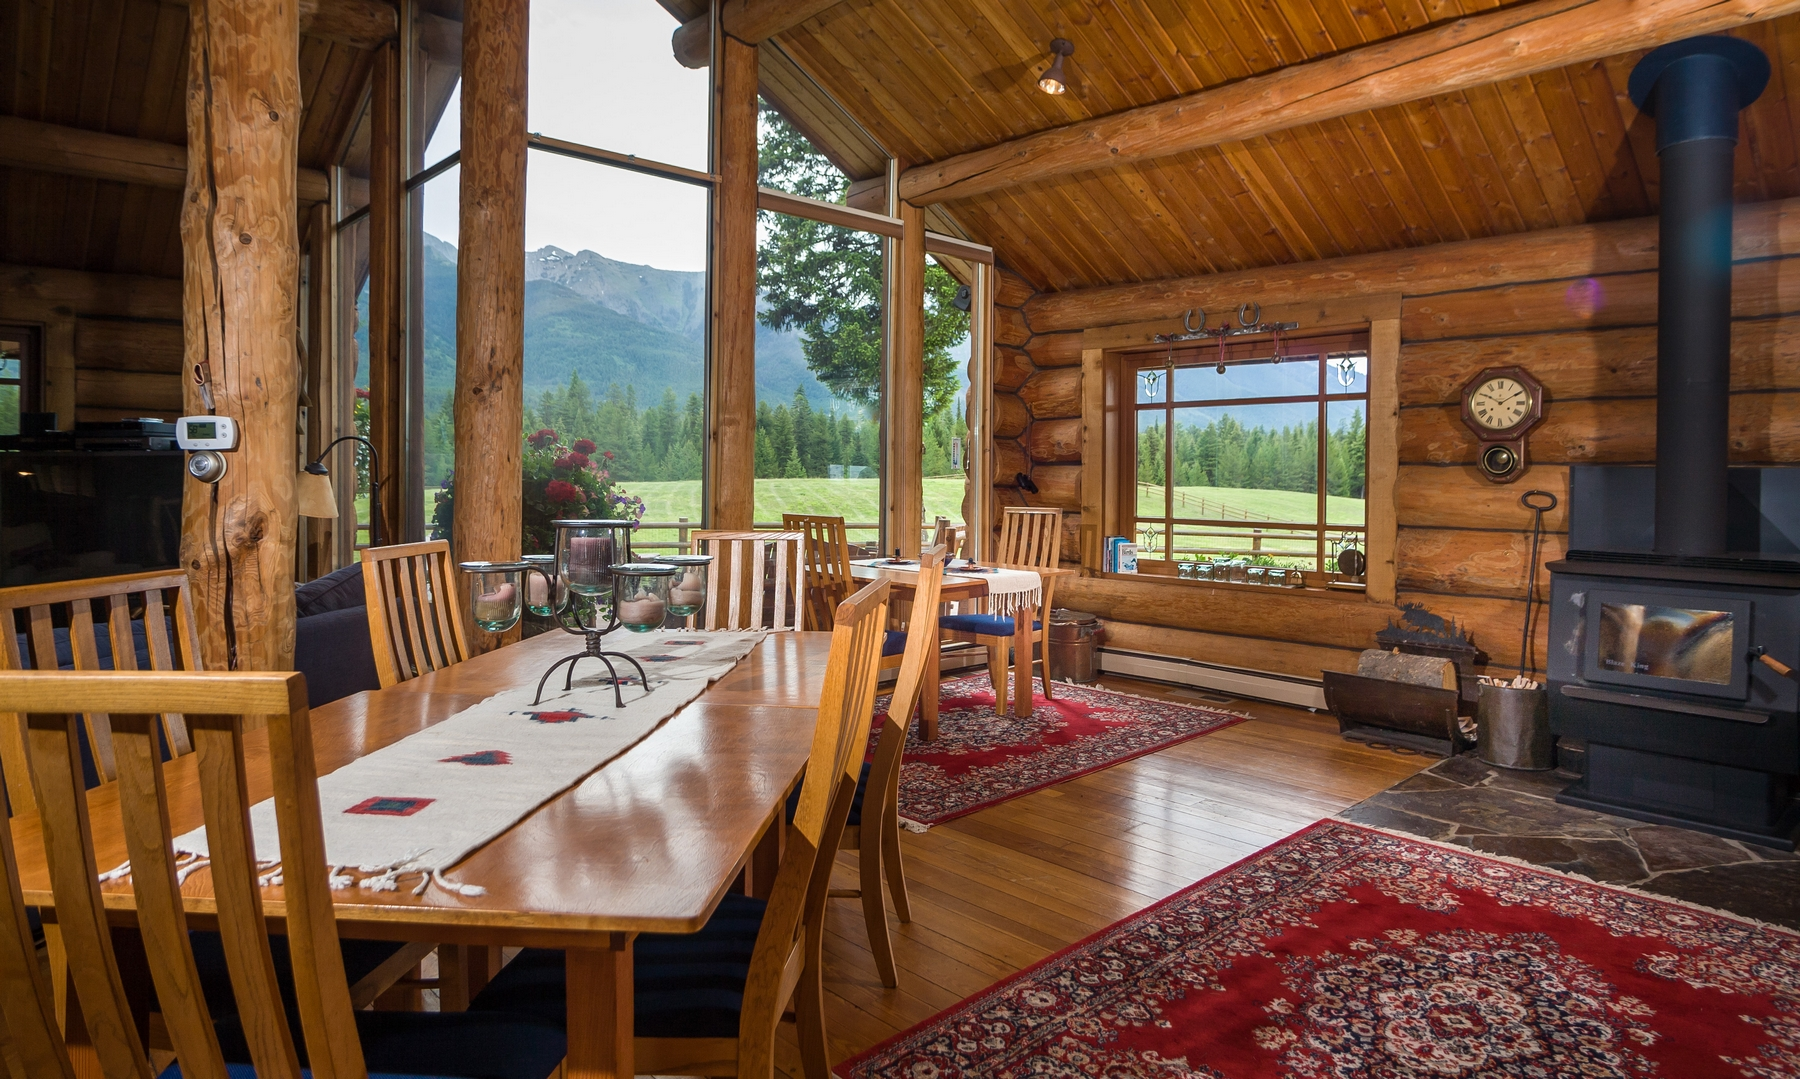 Additional photo for property listing at 1420 Flint Ridge Rd , Condon, MT 59826 1420  Flint Ridge Rd Condon, Montana 59826 United States